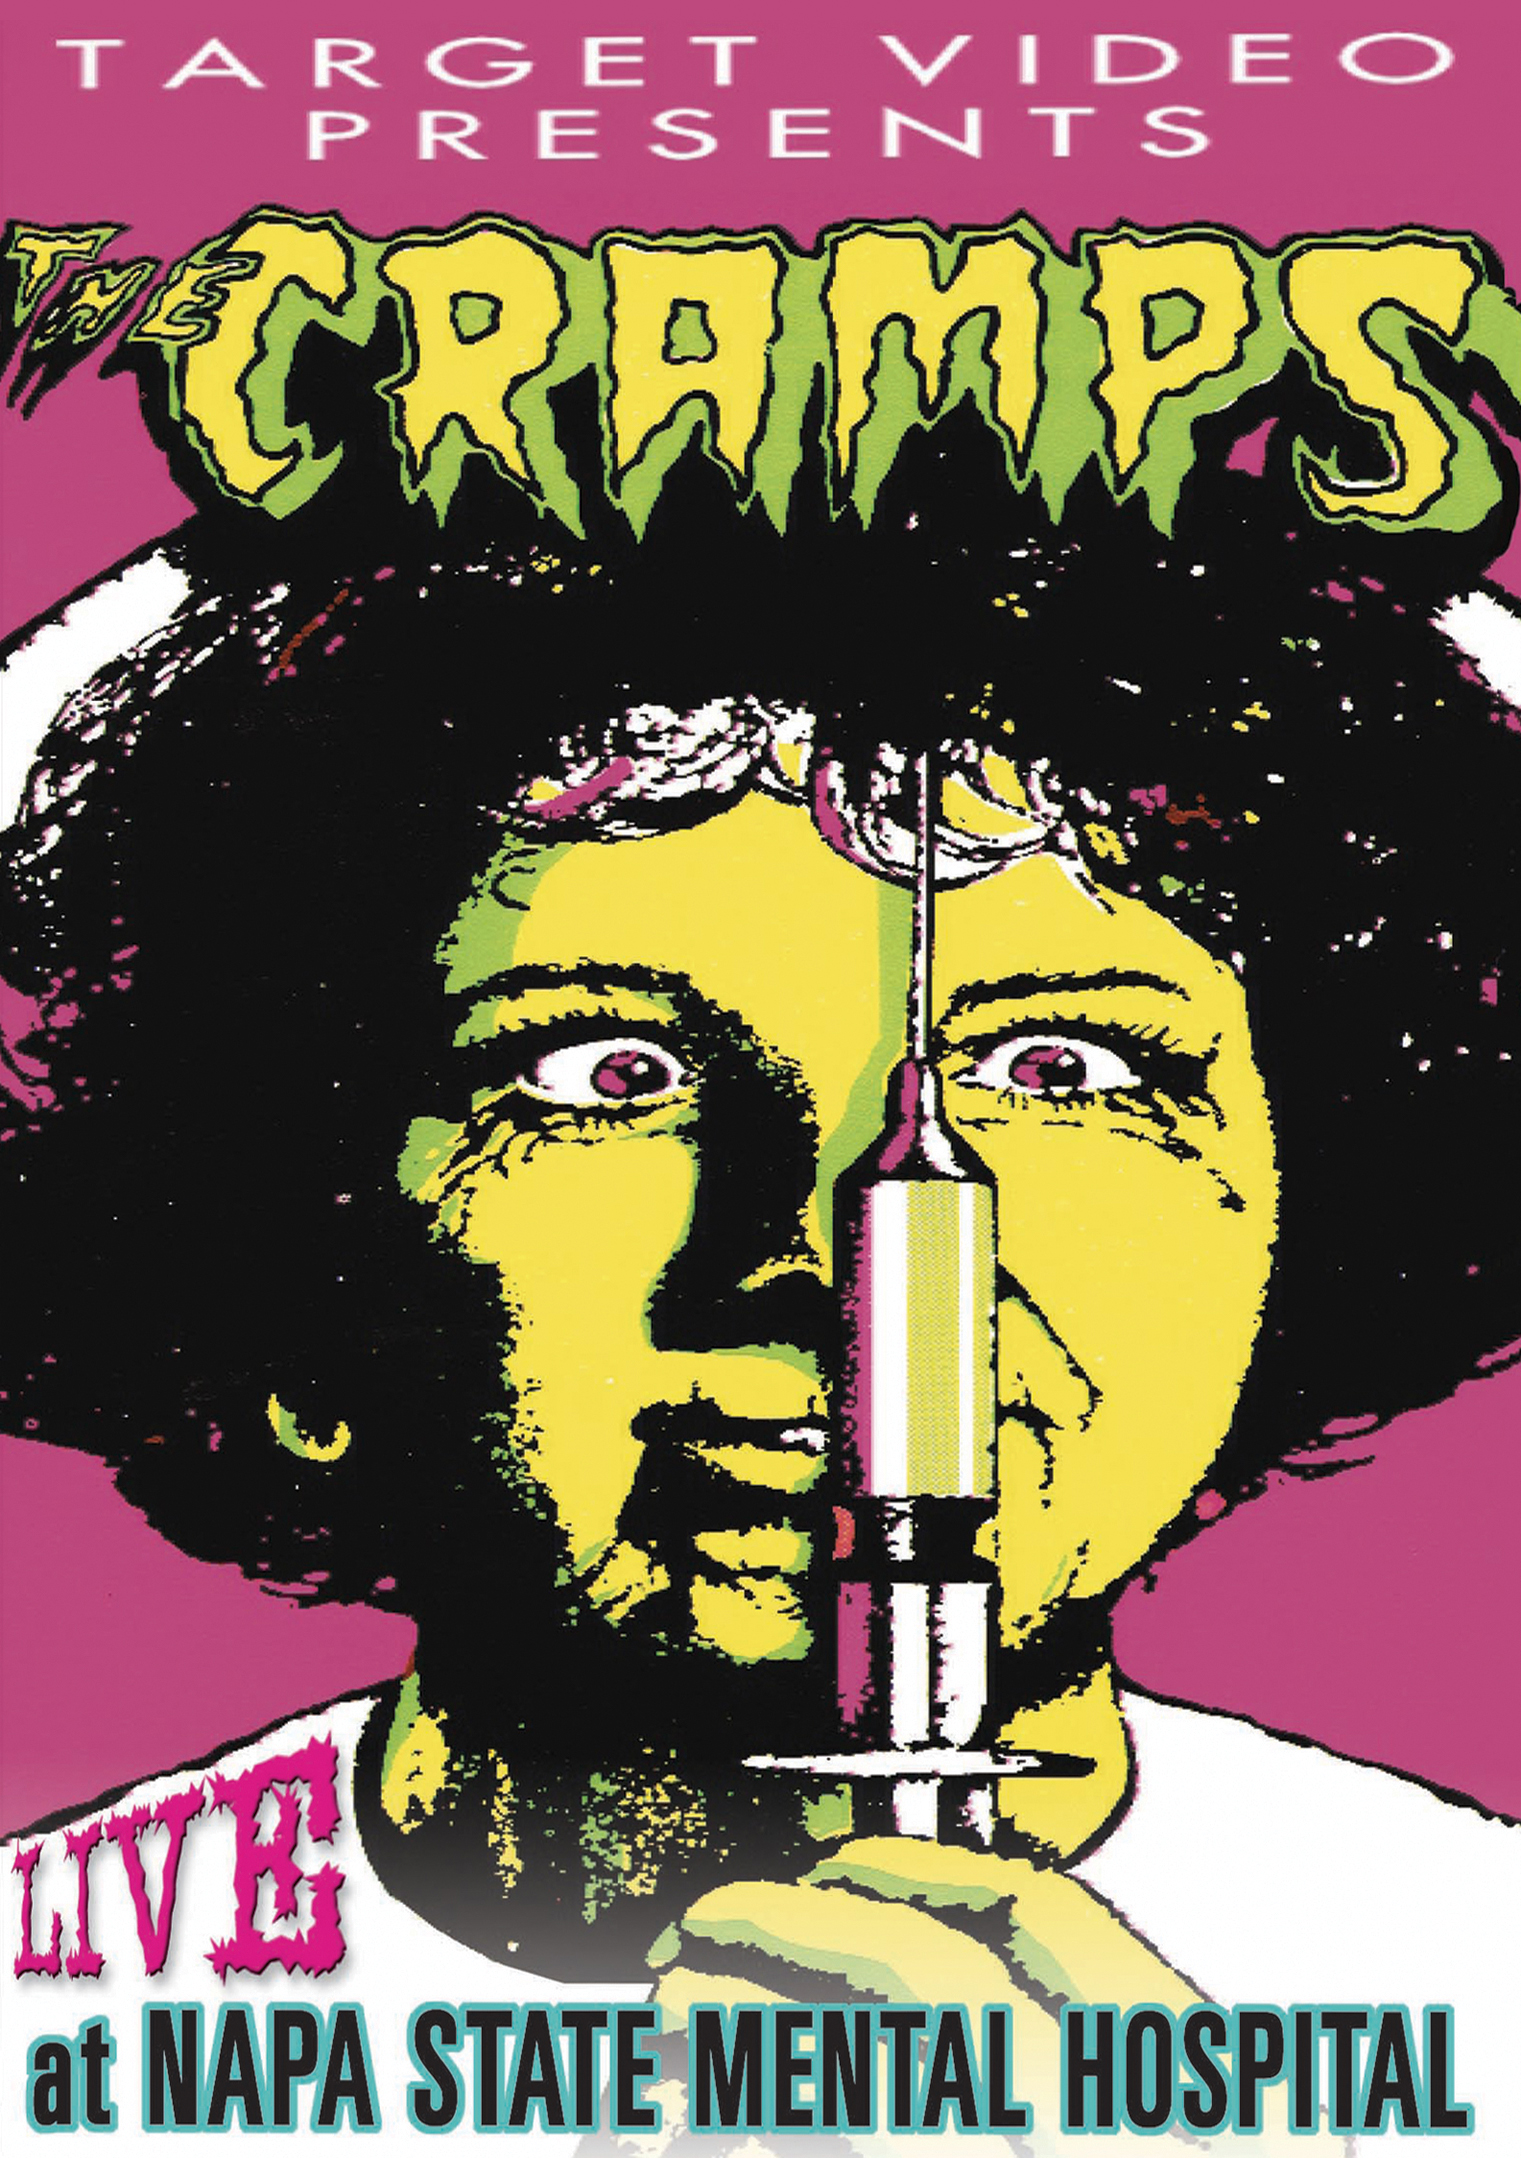 HQ The Cramps Wallpapers | File 1978.14Kb